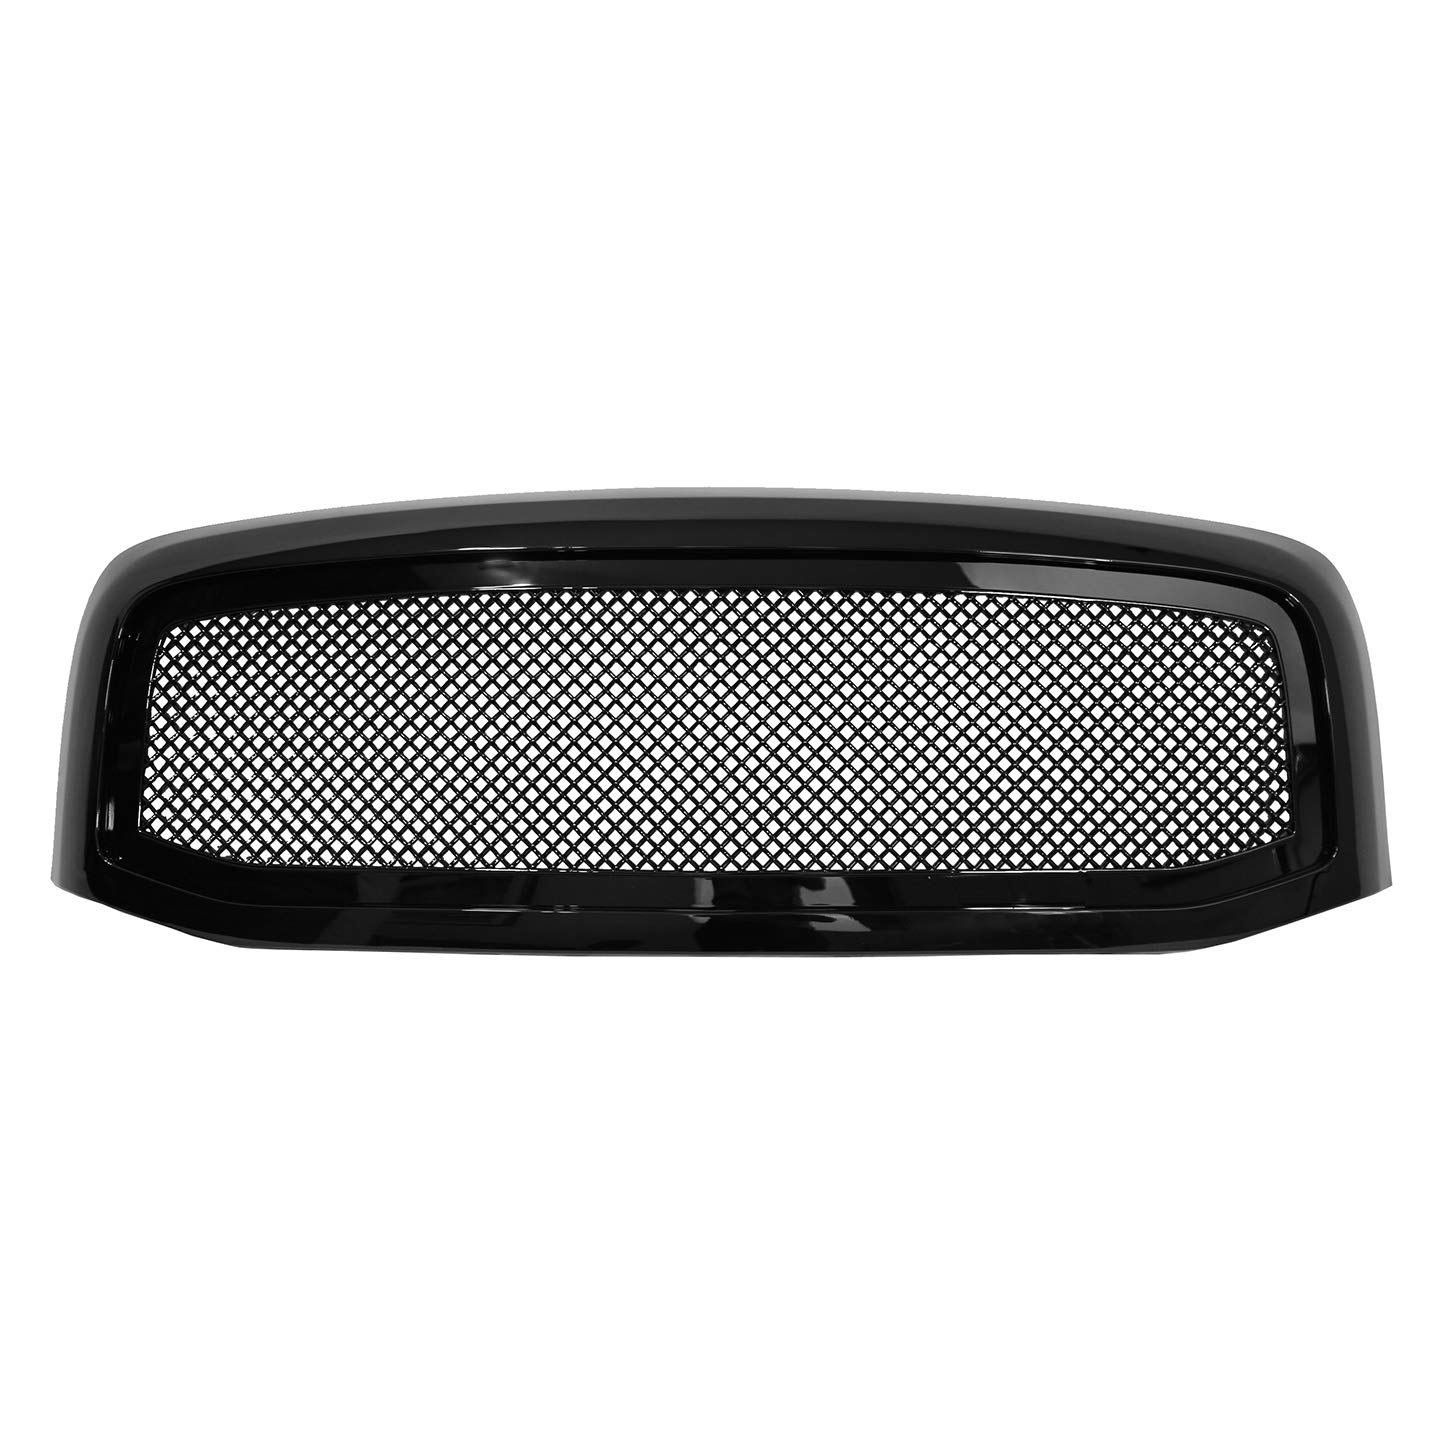 Paragon Front Grille for 2006-08 Dodge Ram 1500/2500/3500 - Gloss Black Grill Grilles with Mesh Paragon Parts